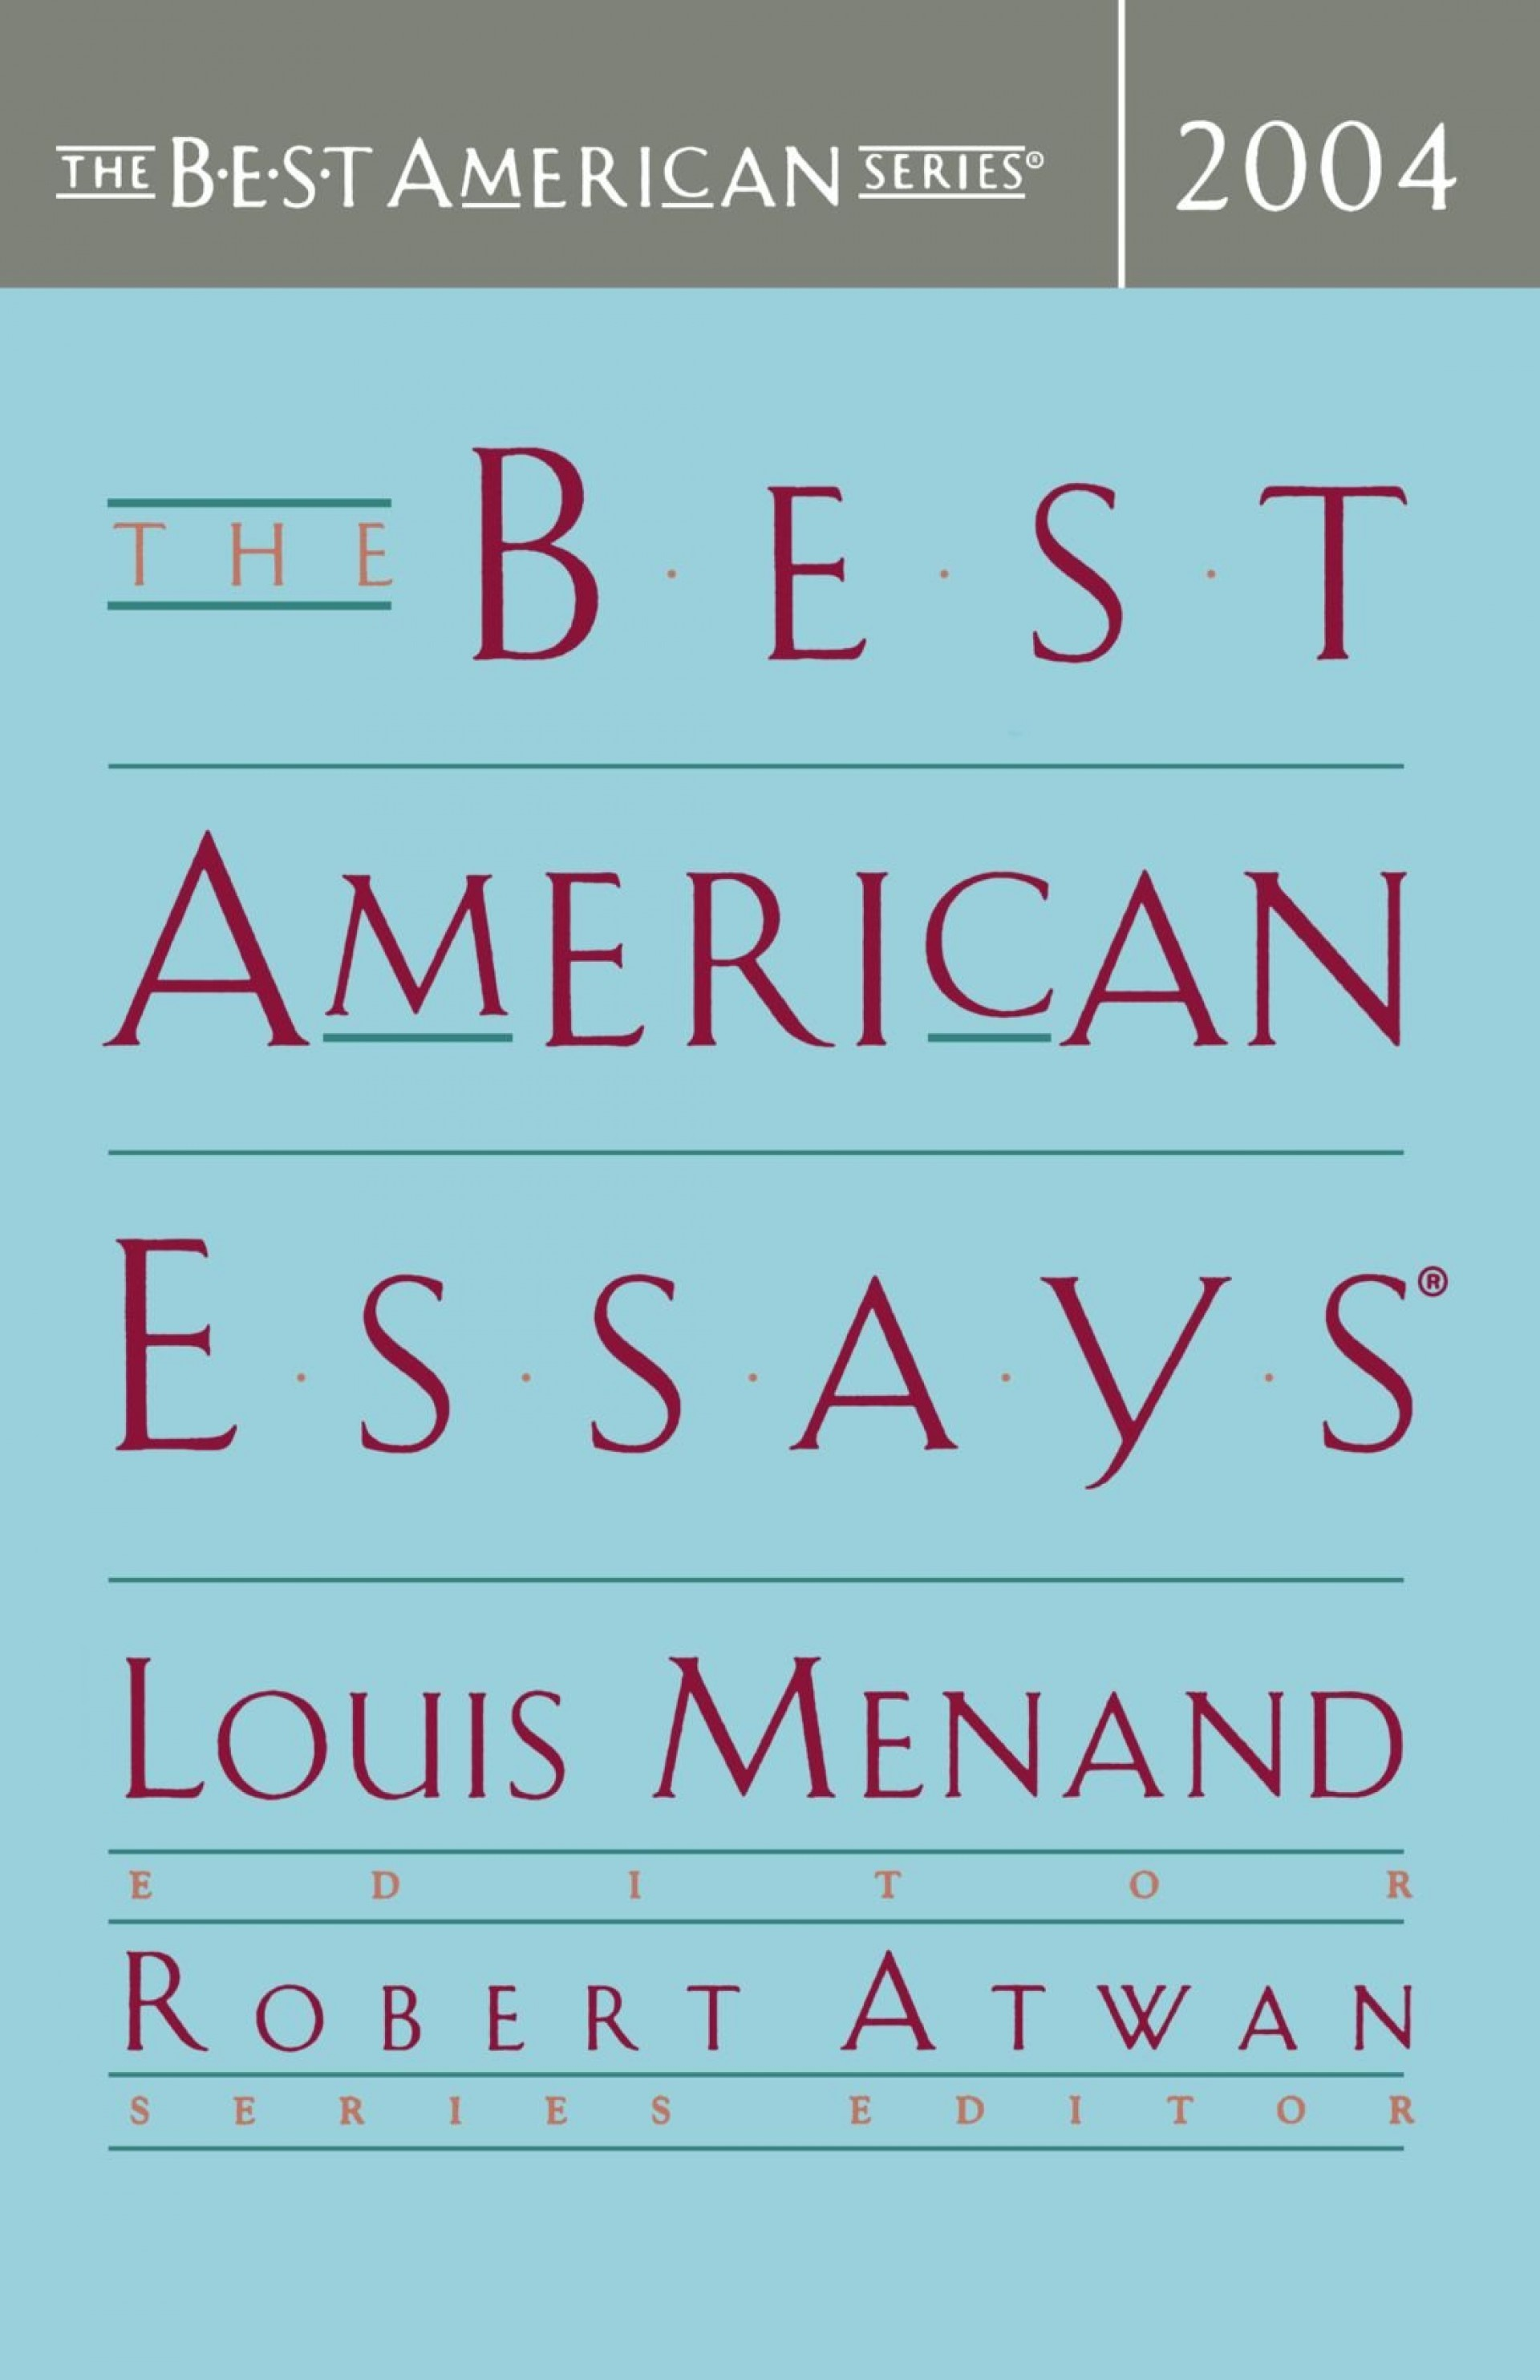 015 Essay Example The Best American Essays Wonderful 2018 List Pdf Download 2017 Free 1920